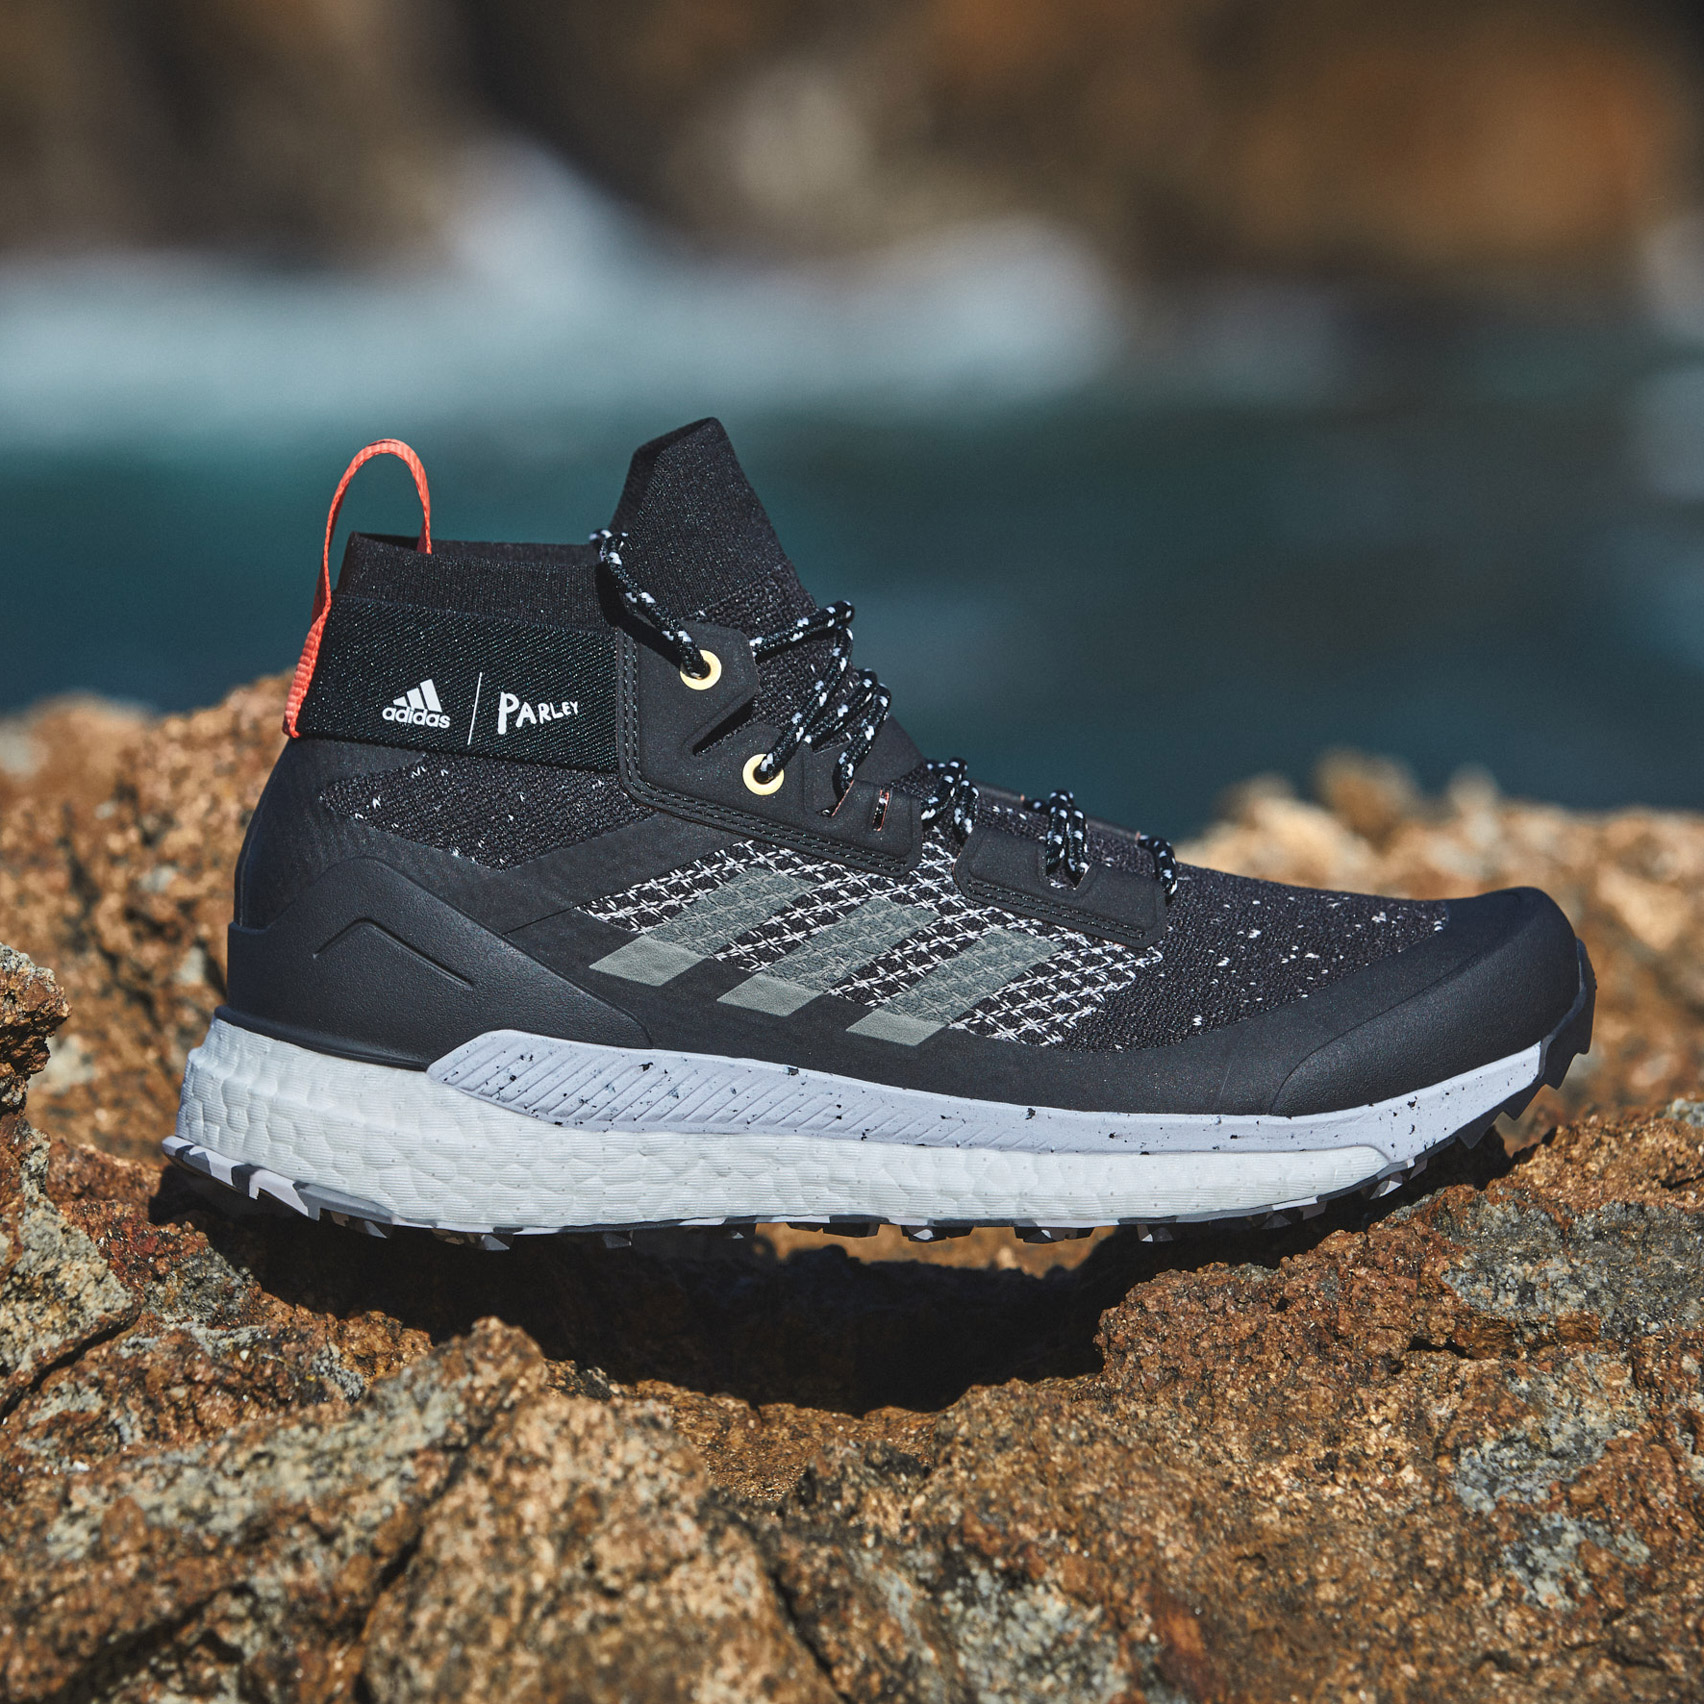 Adidas uses Parley ocean plastic for